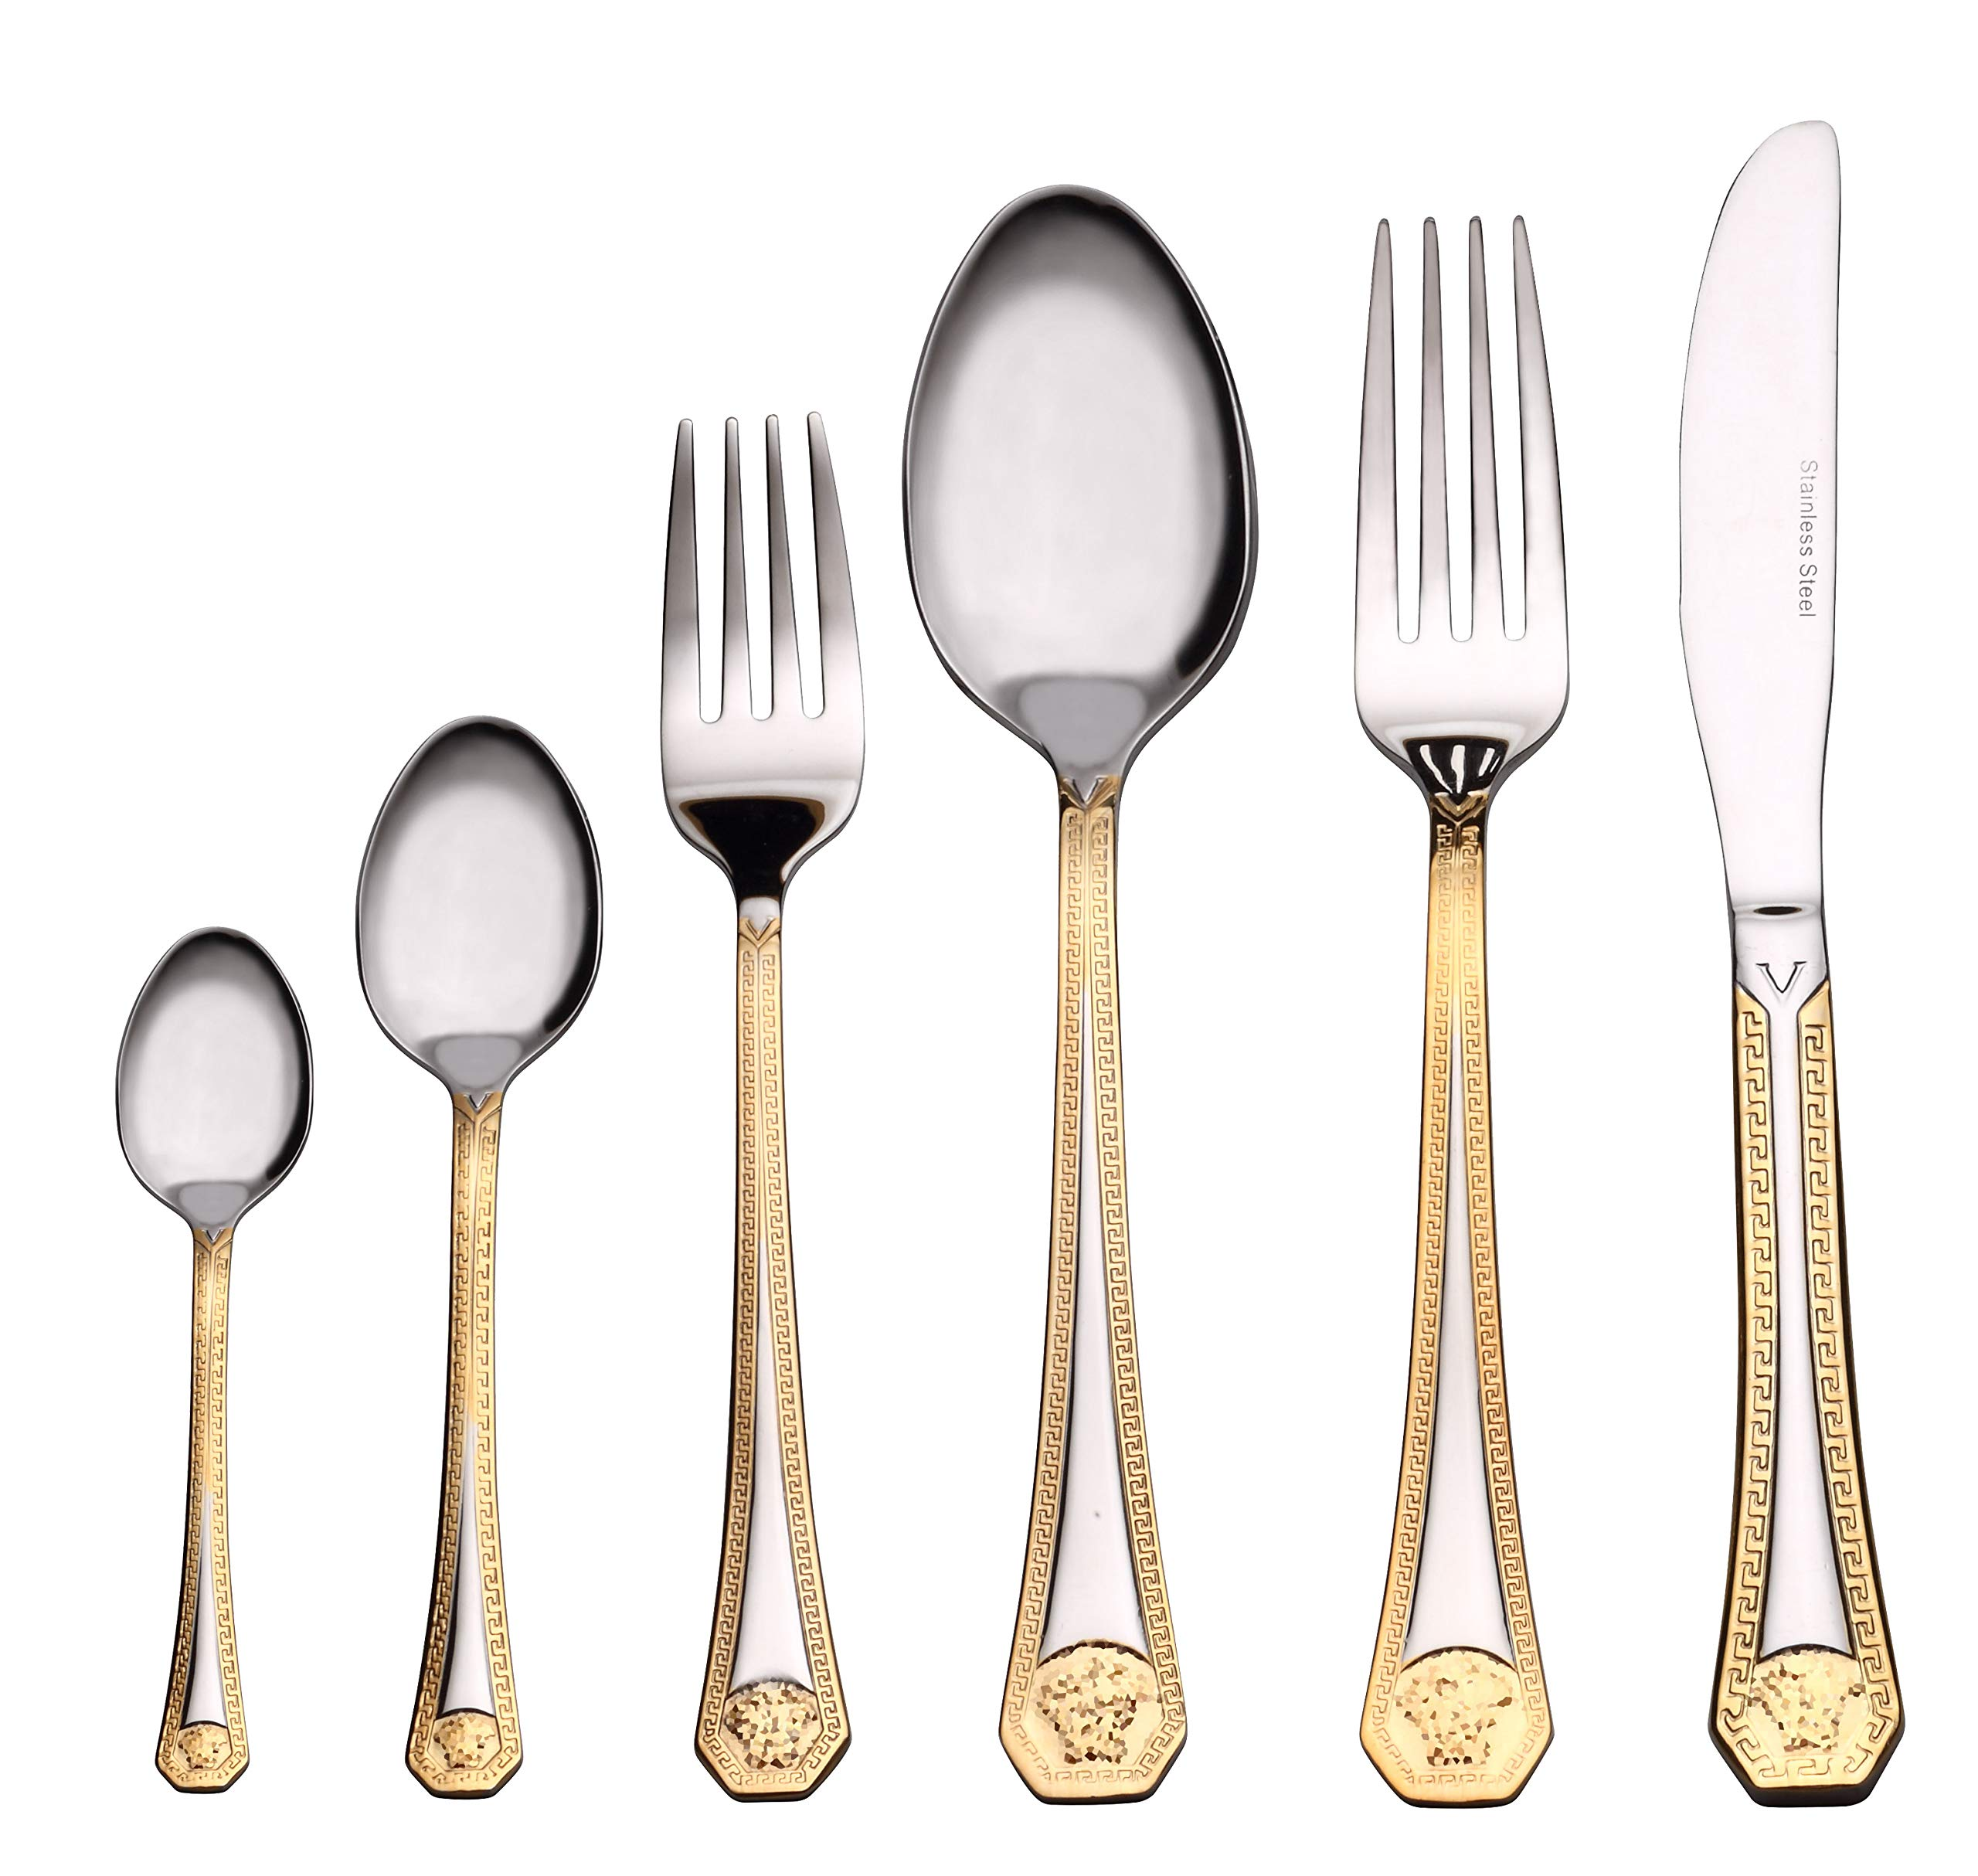 Venezia Collection 'Greek' 75-Piece Fine Flatware Set, Silverware Cutlery Dining Service for 12, Premium 18/10 Surgical Stainless Steel, 24K Gold-Plated Hostess Serving Set